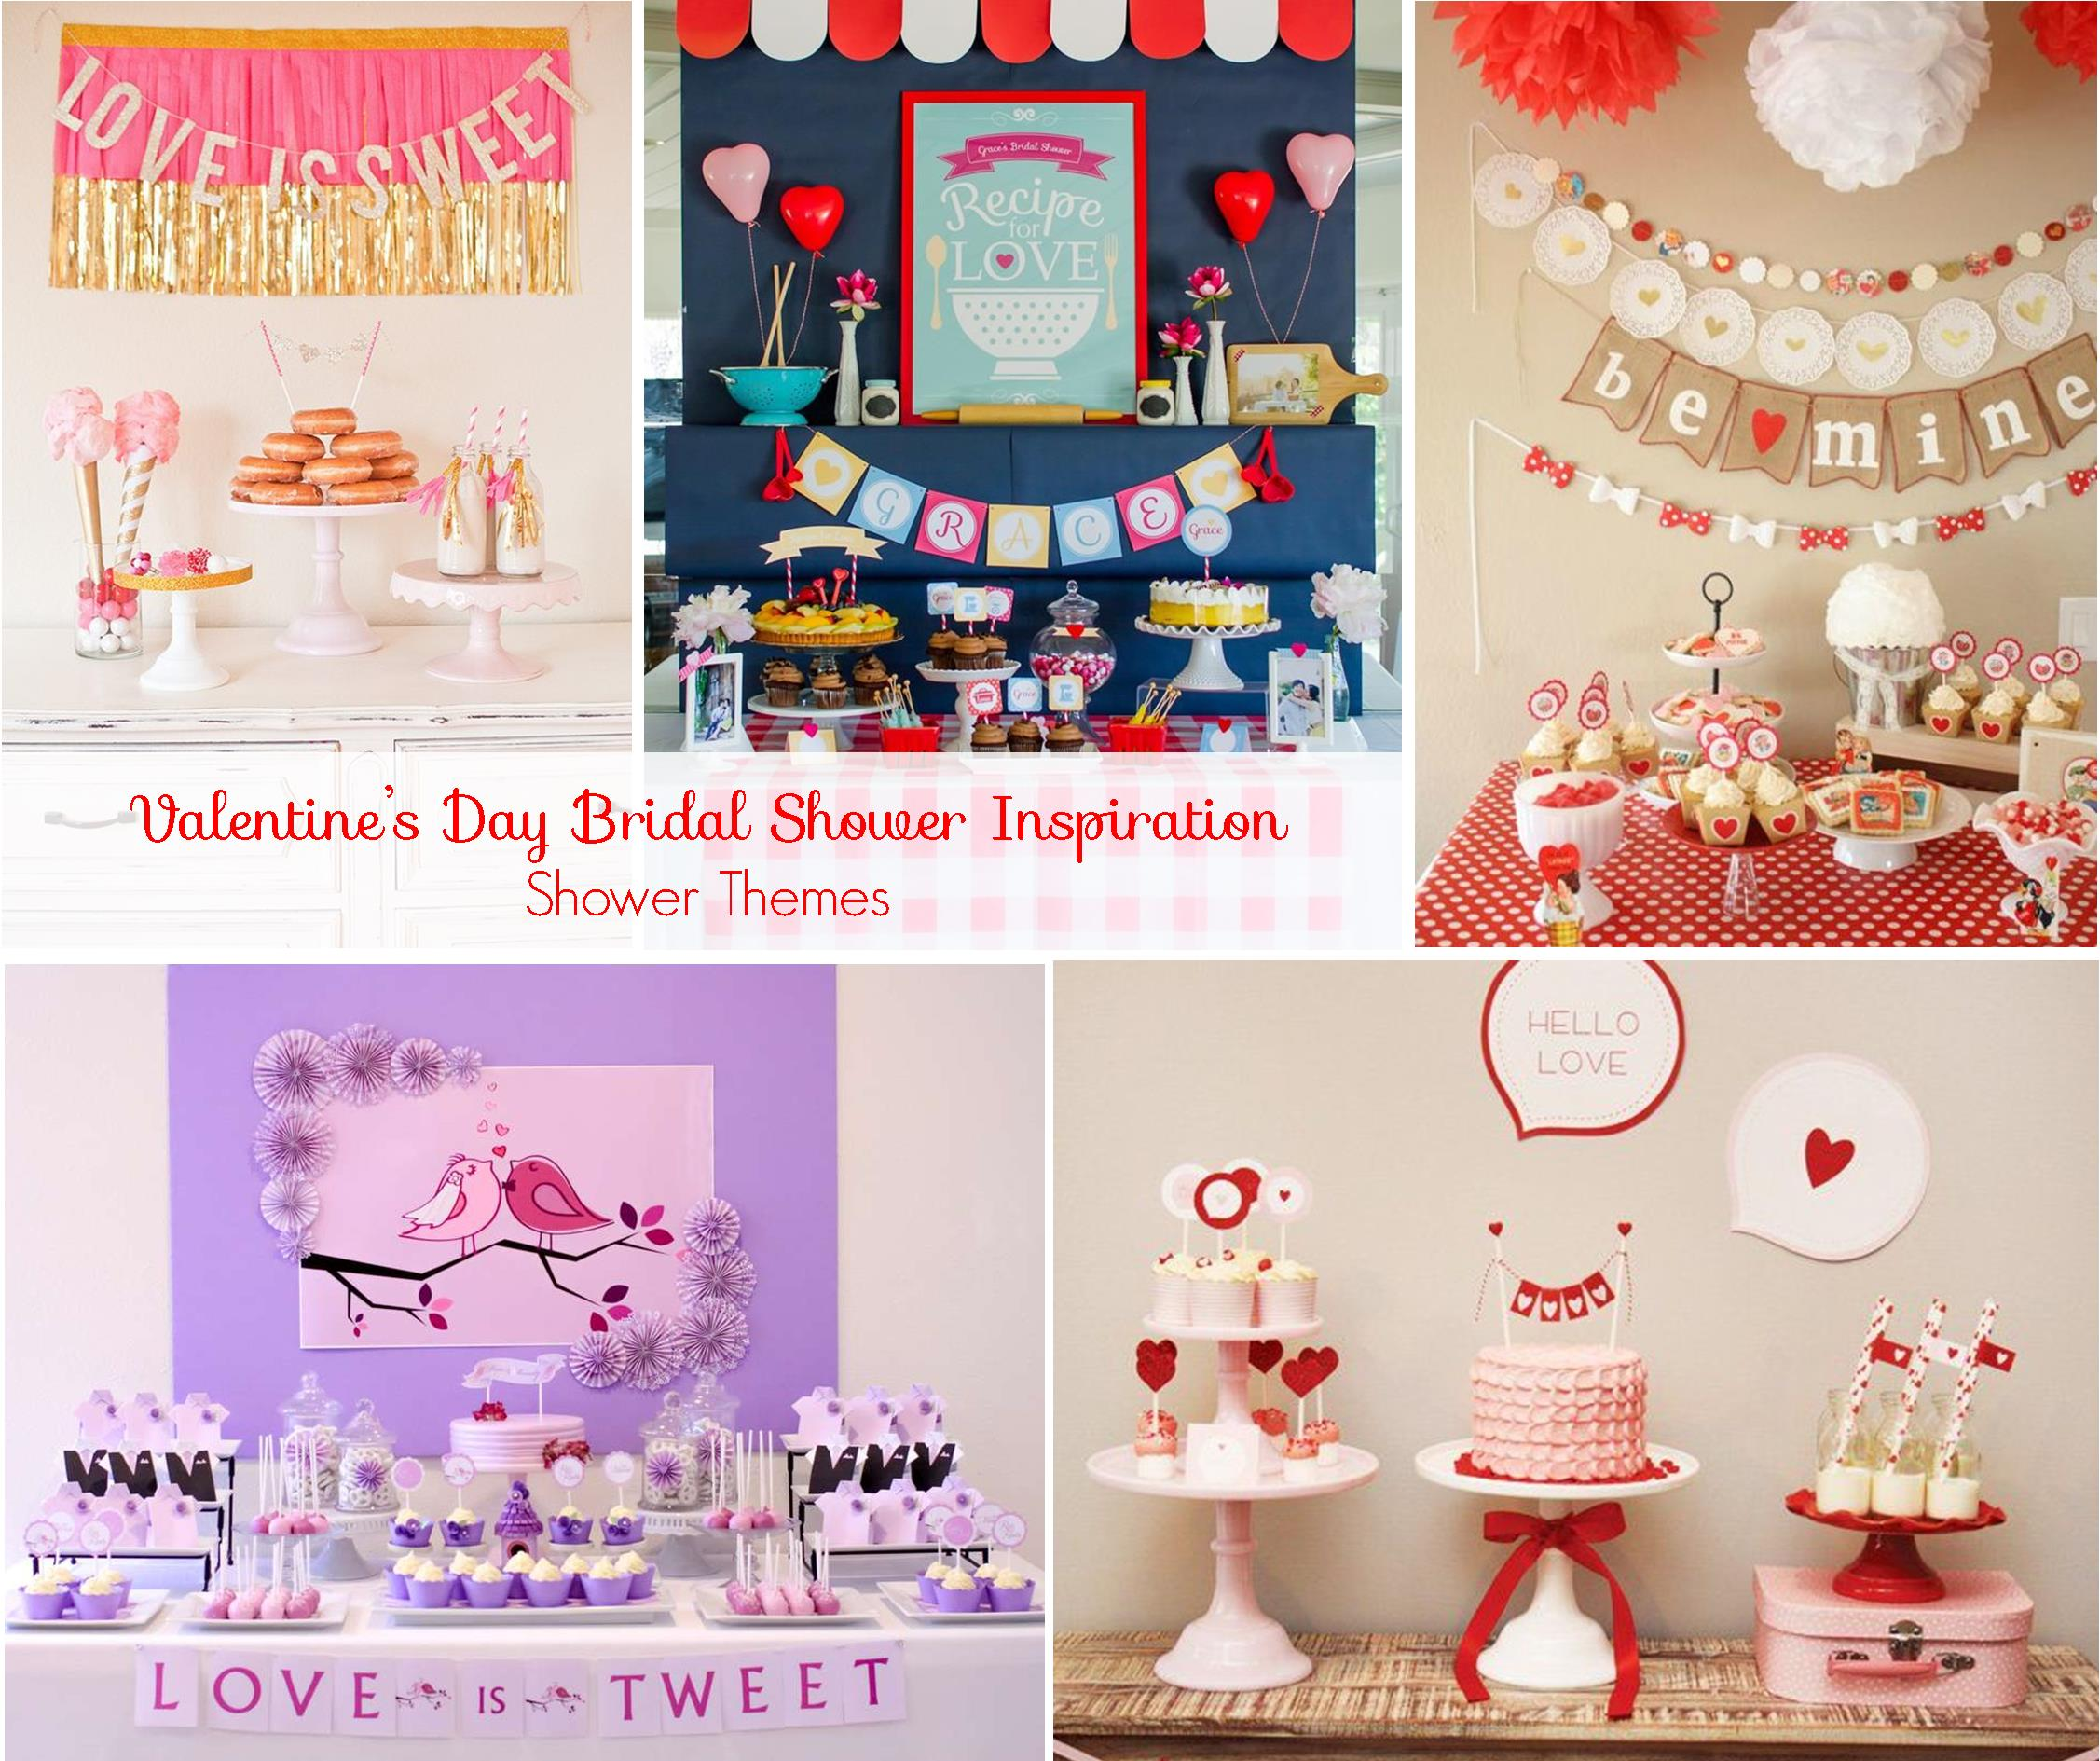 Valentine's Day Bridal Shower Inspiration: Shower Themes | RegistryFinder.com